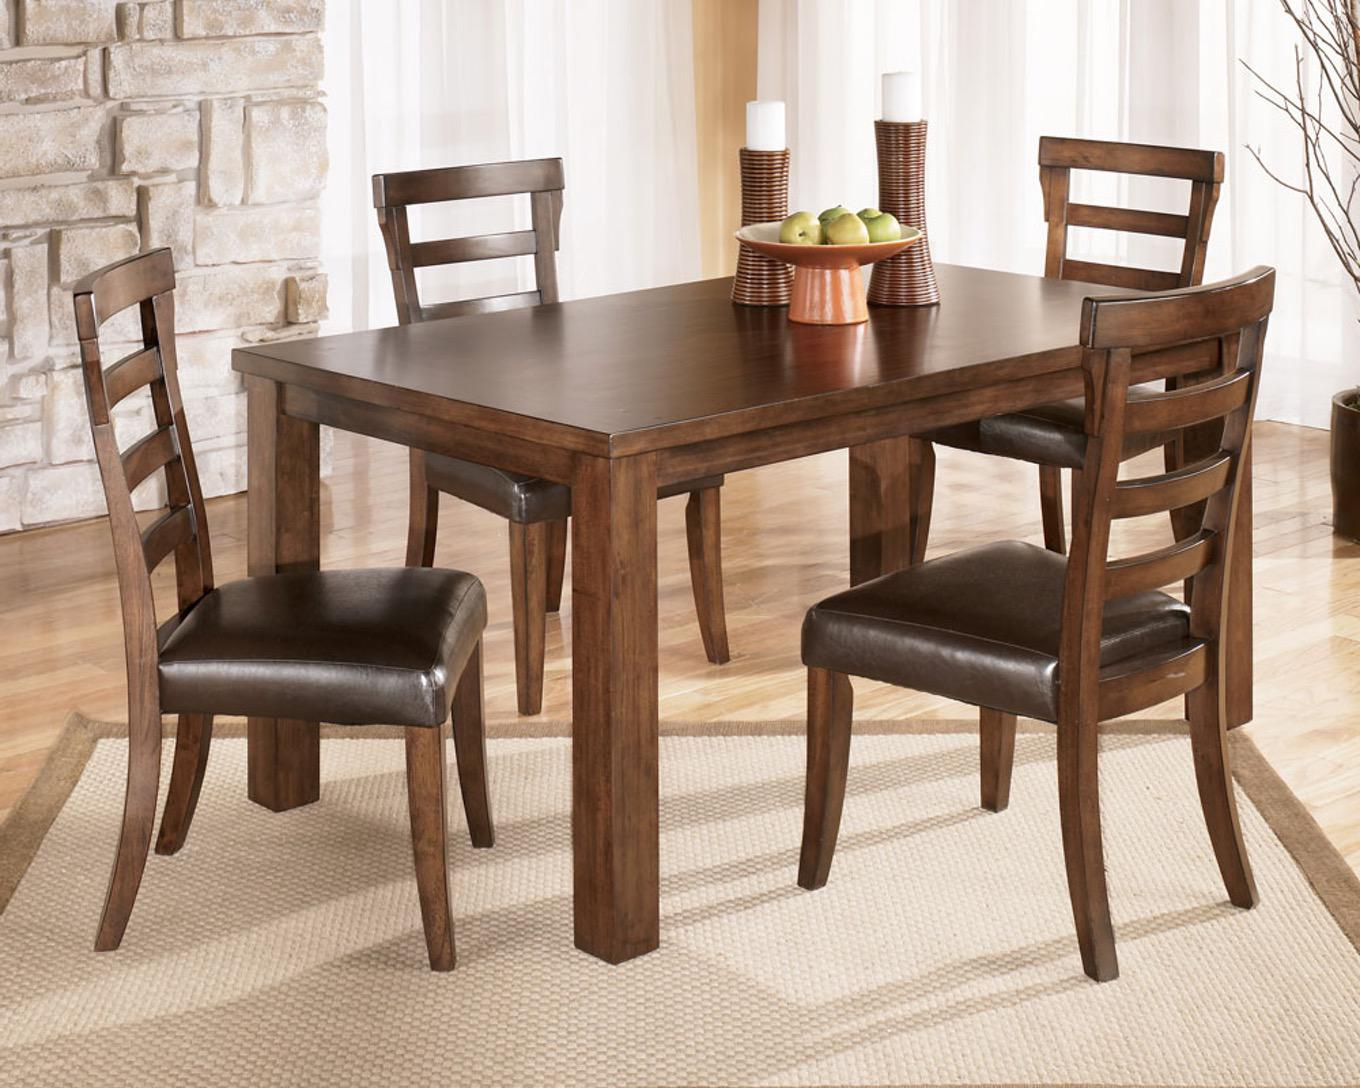 Image of: Wood Dining Room Furniture